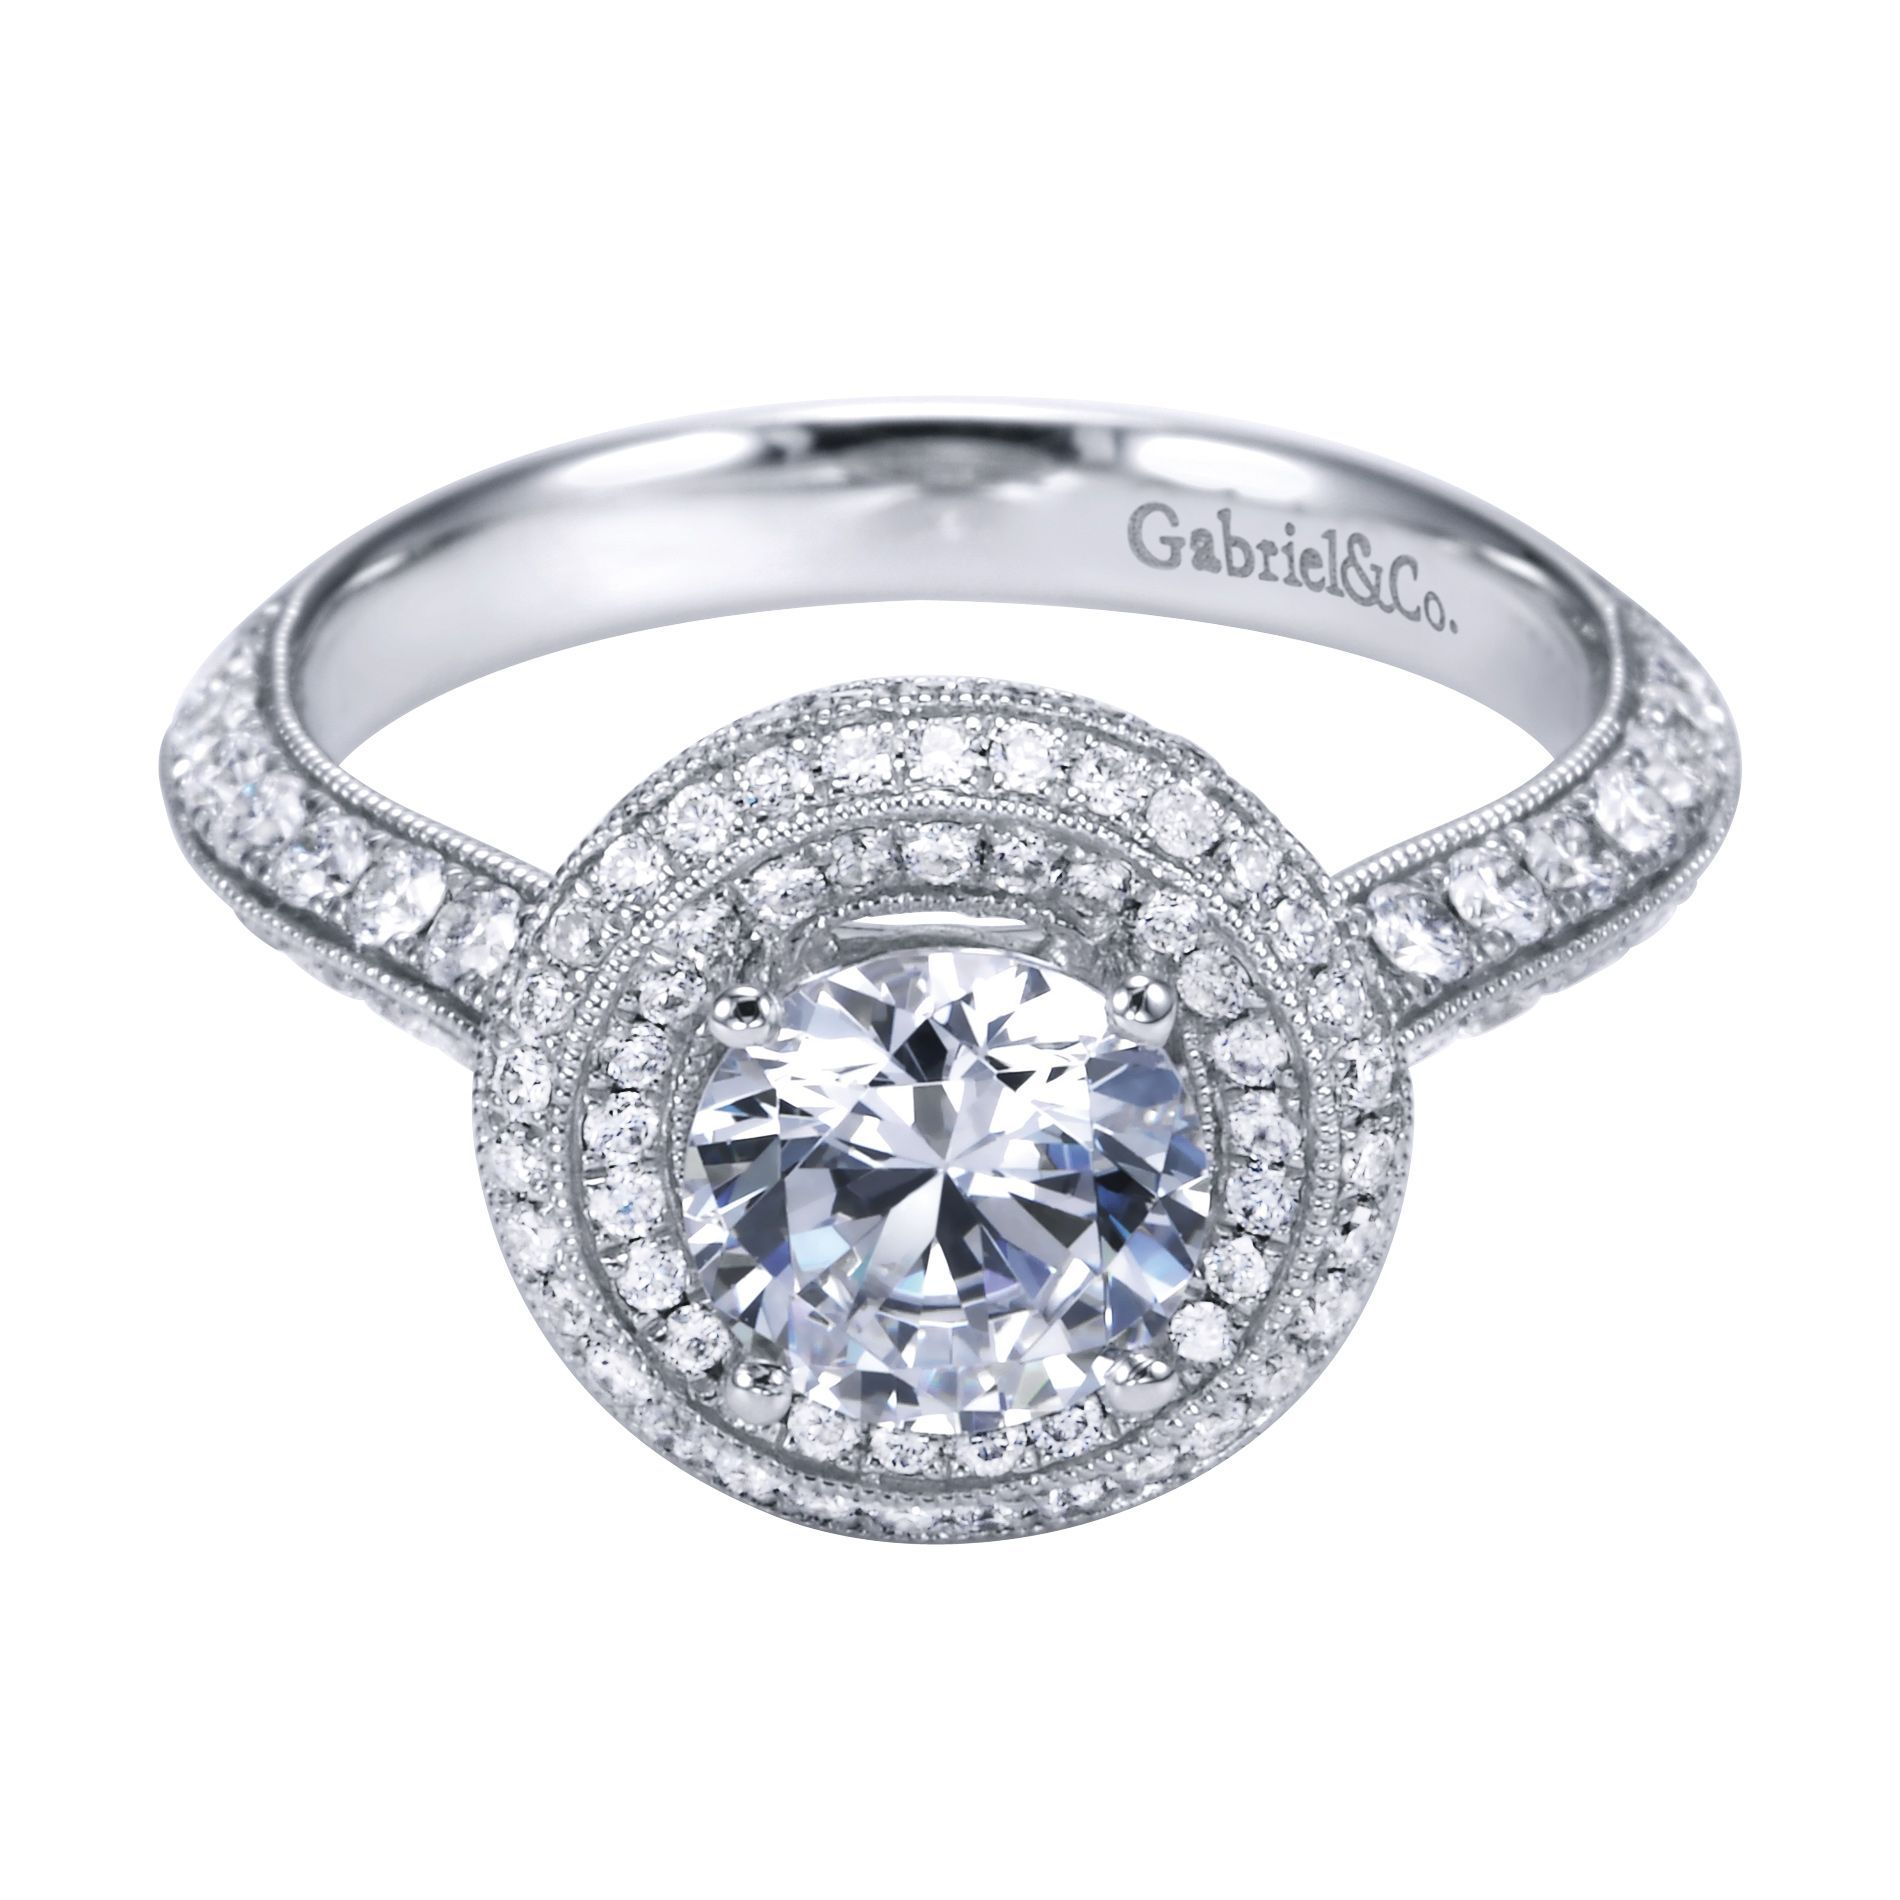 world the pin most settings ring classy of and elegant popular in jewellery one engagement